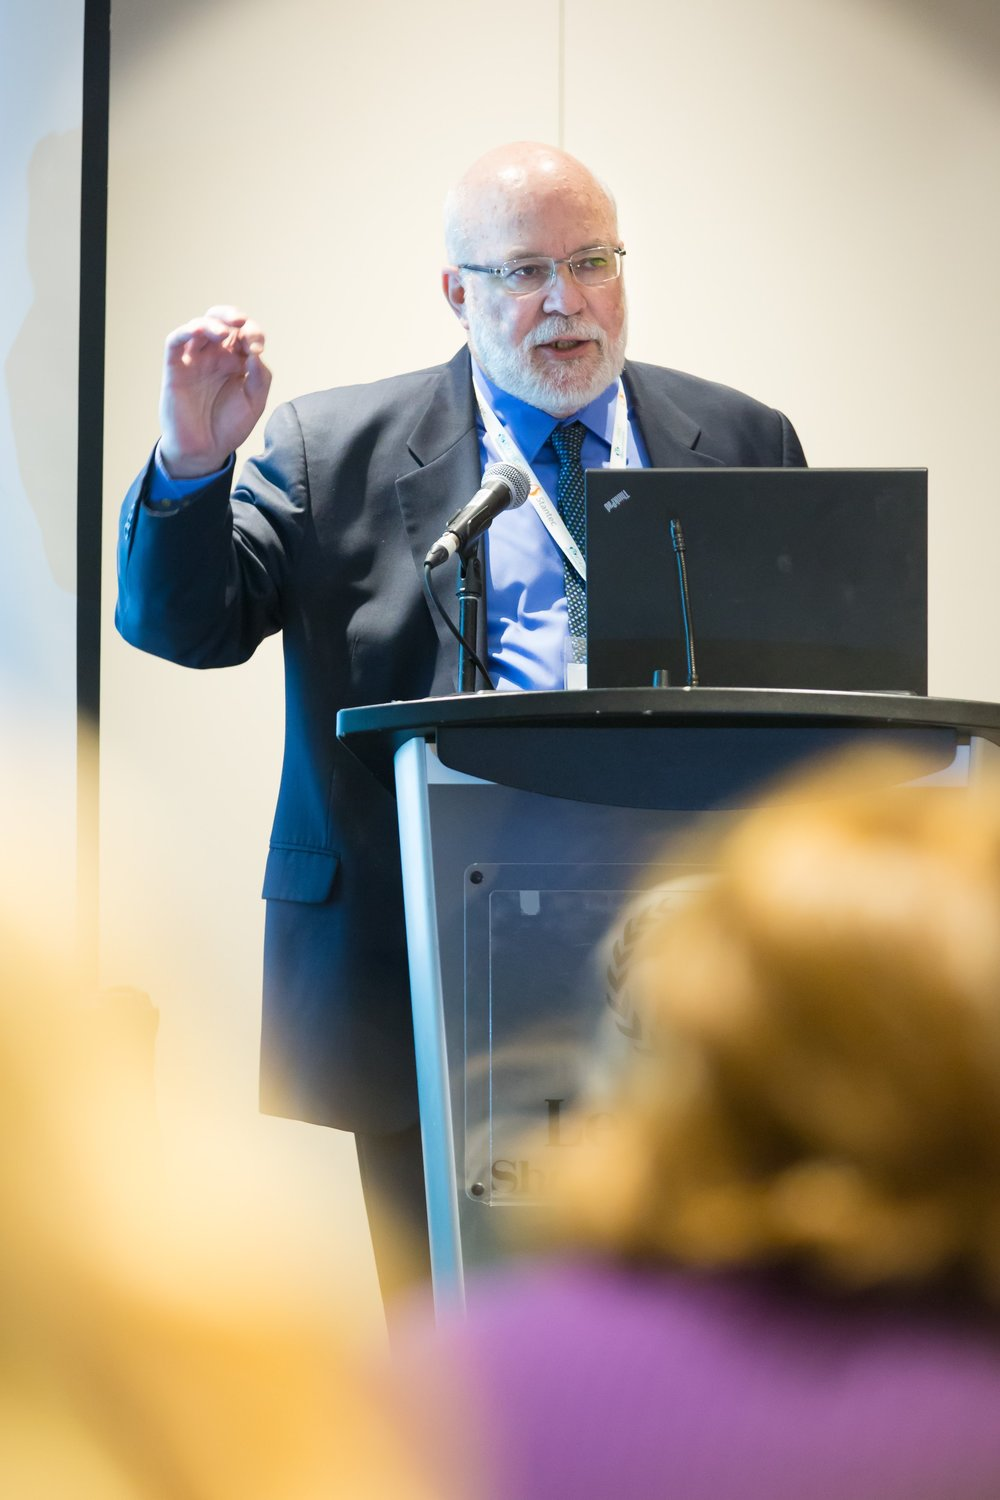 Frank Gavin presenting at the Concurrent Session  CHILD-BRIGHT's Challenge to You: How Can You Move Beyond Good Intentions?  Photo: Dufour/Egan